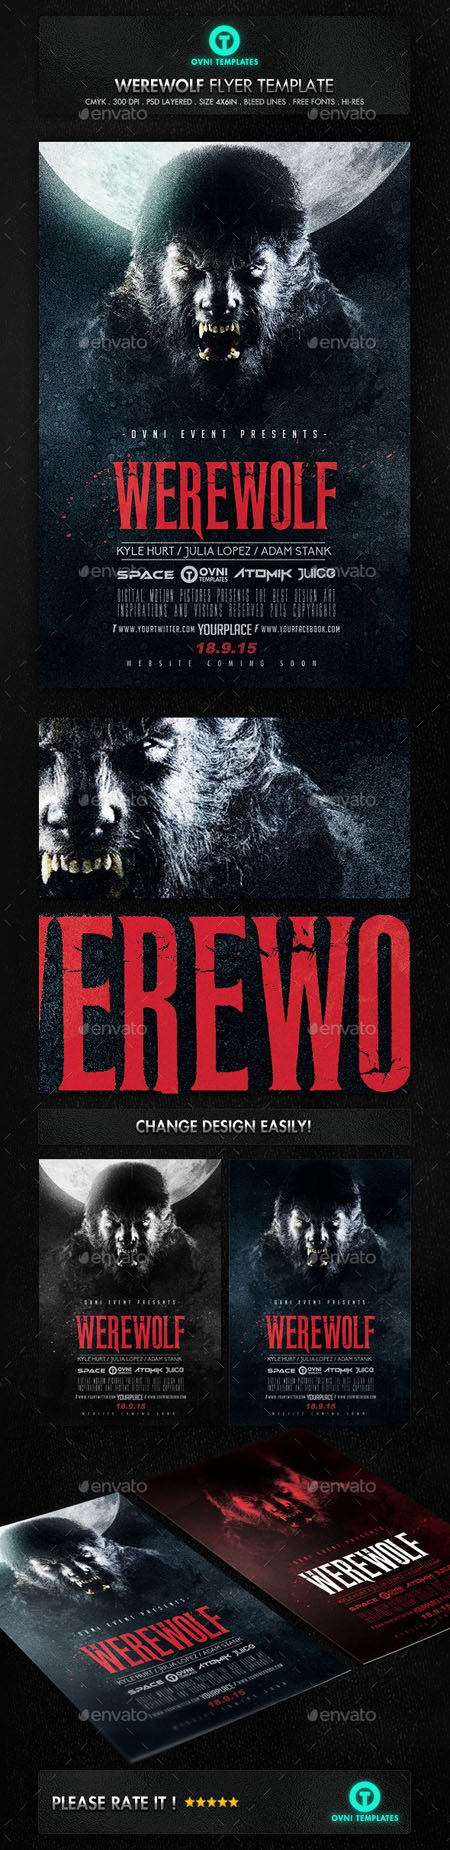 GraphicRiver - Werewolf Dark Horror Movie Flyer Poster Template 12871169